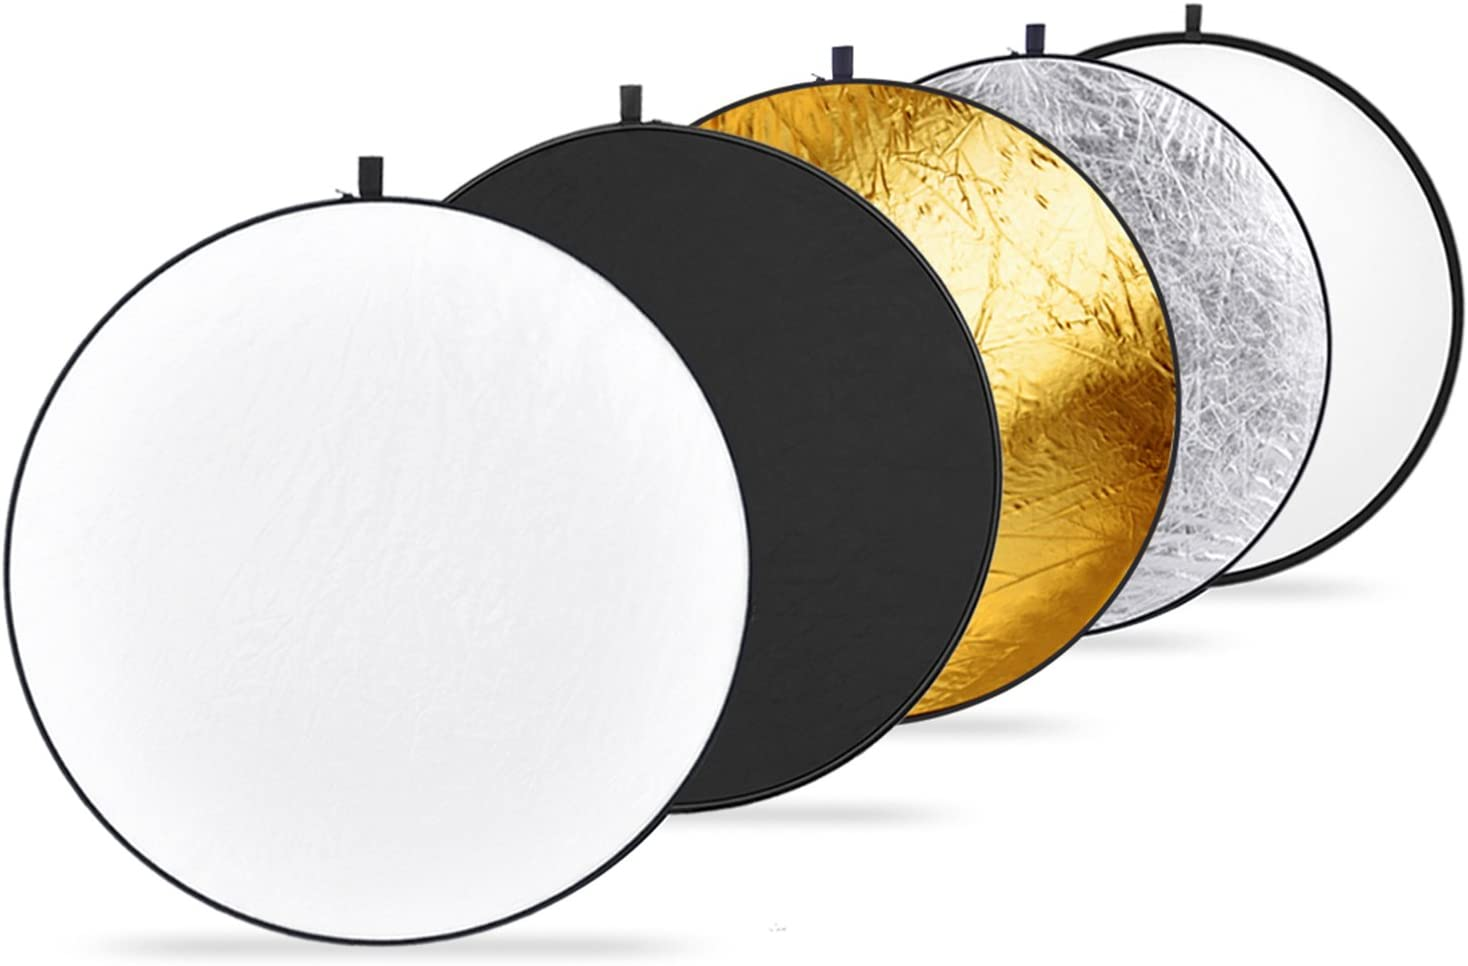 Reflector Round Soft Light Board 80cm 5 in 1 Reflector Portable Folding Photographic Equipment Photography Reflector with Handle Ideal for Photography Activities Photographic Reflector